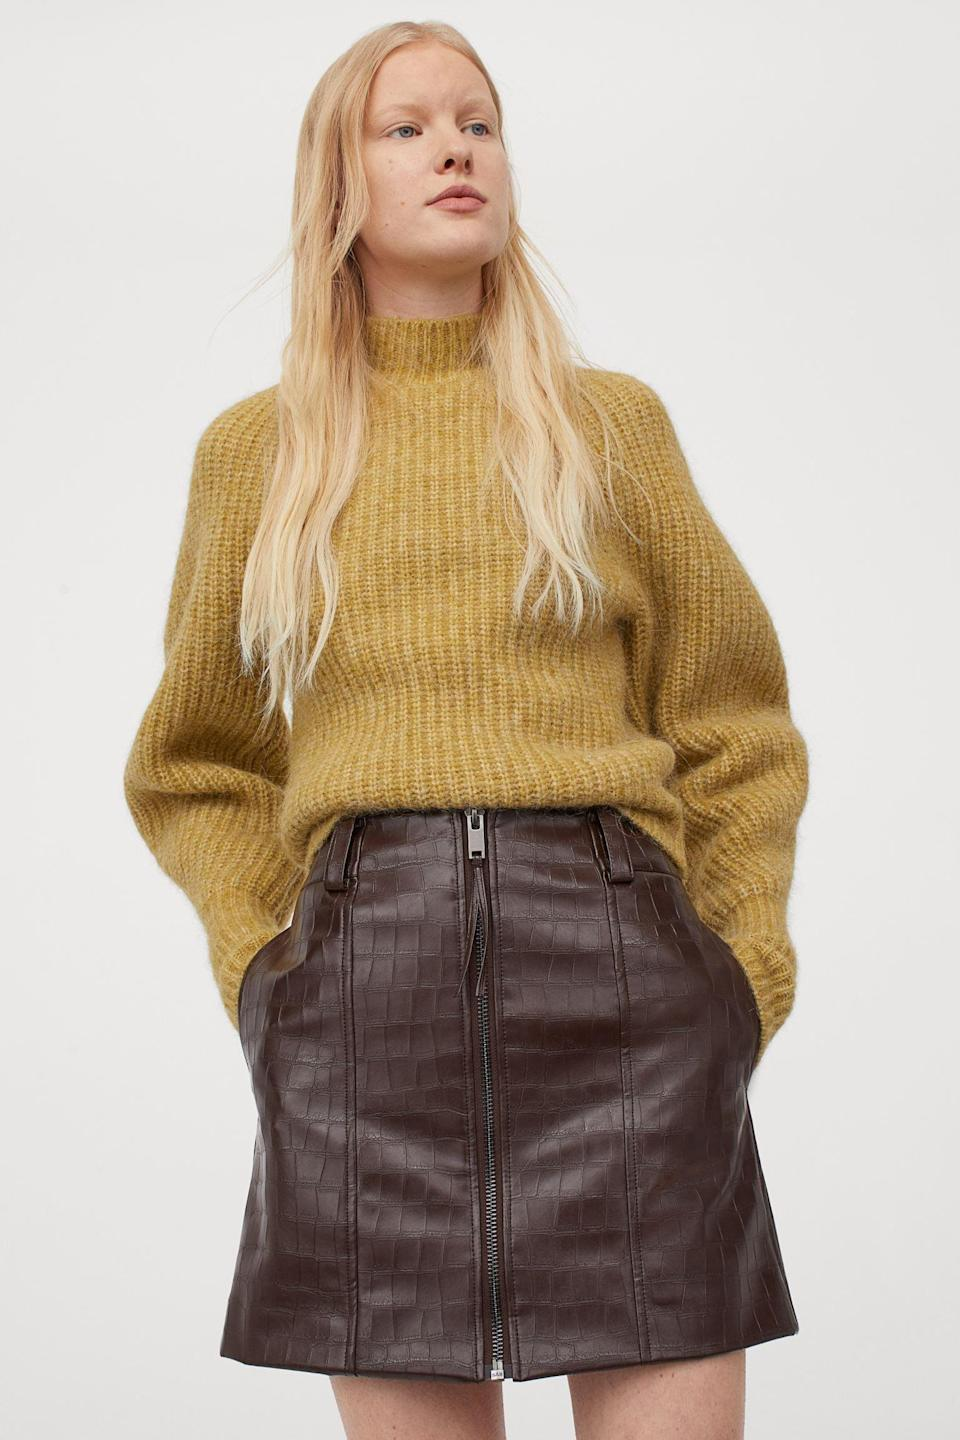 <p>Wear this <span>Crocodile-patterned Short Skirt</span> ($50) with a bright sweater, or keep it neutral with a burnt orange cardigan top.</p>